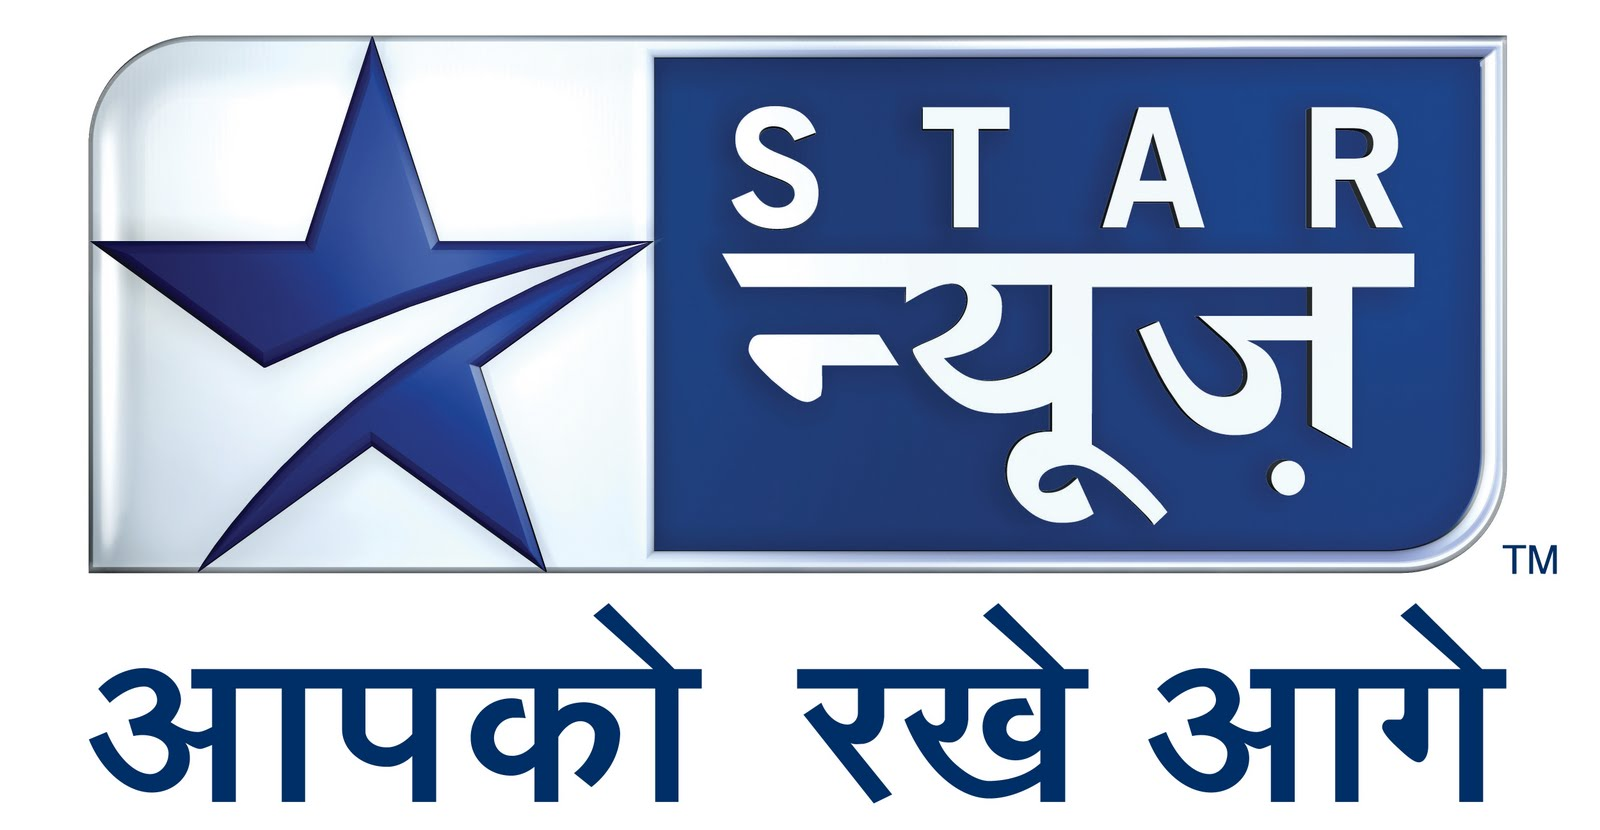 WATCH STAR NEWS WATCH FREE INDIAN NEWS TV CHANNEL ONLINE FREE